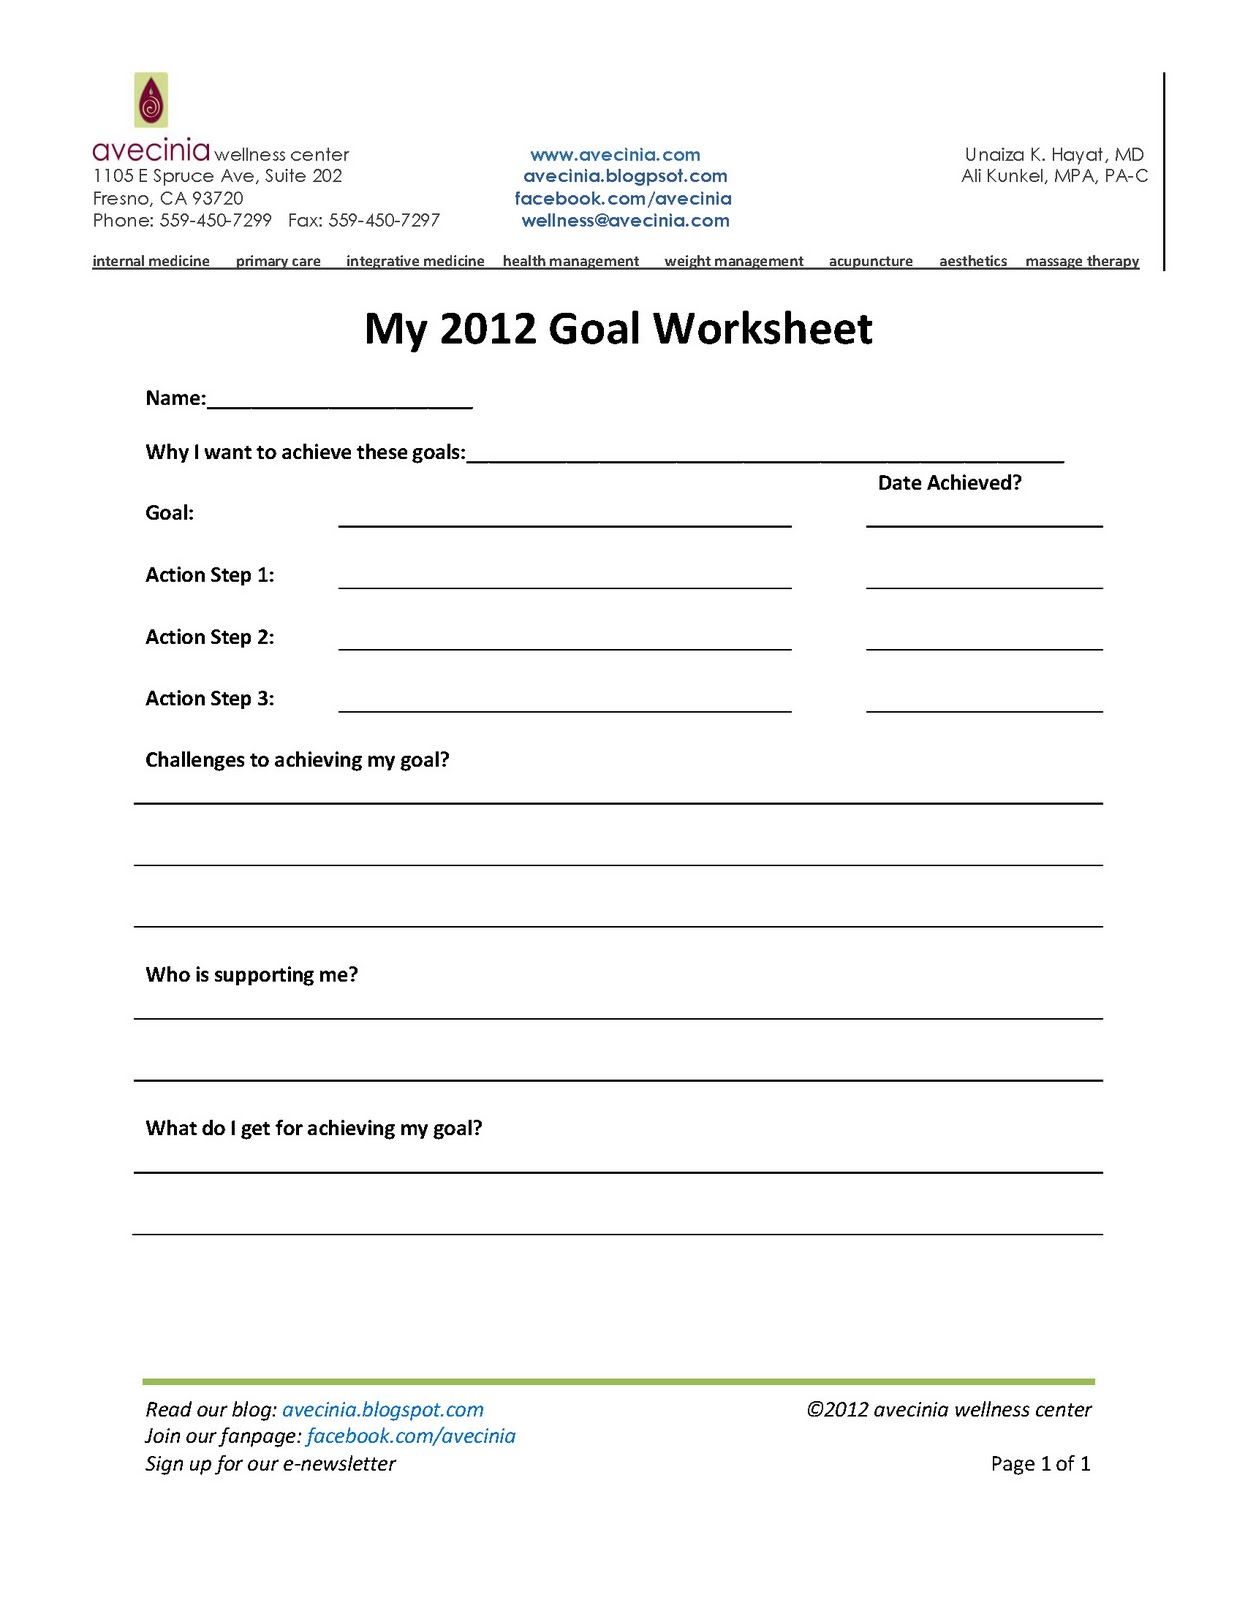 Worksheet Mental Health Wellness Worksheets welcome to avecinia wellness center flavors page me for daily updates on news information and more health care join centers facebook co